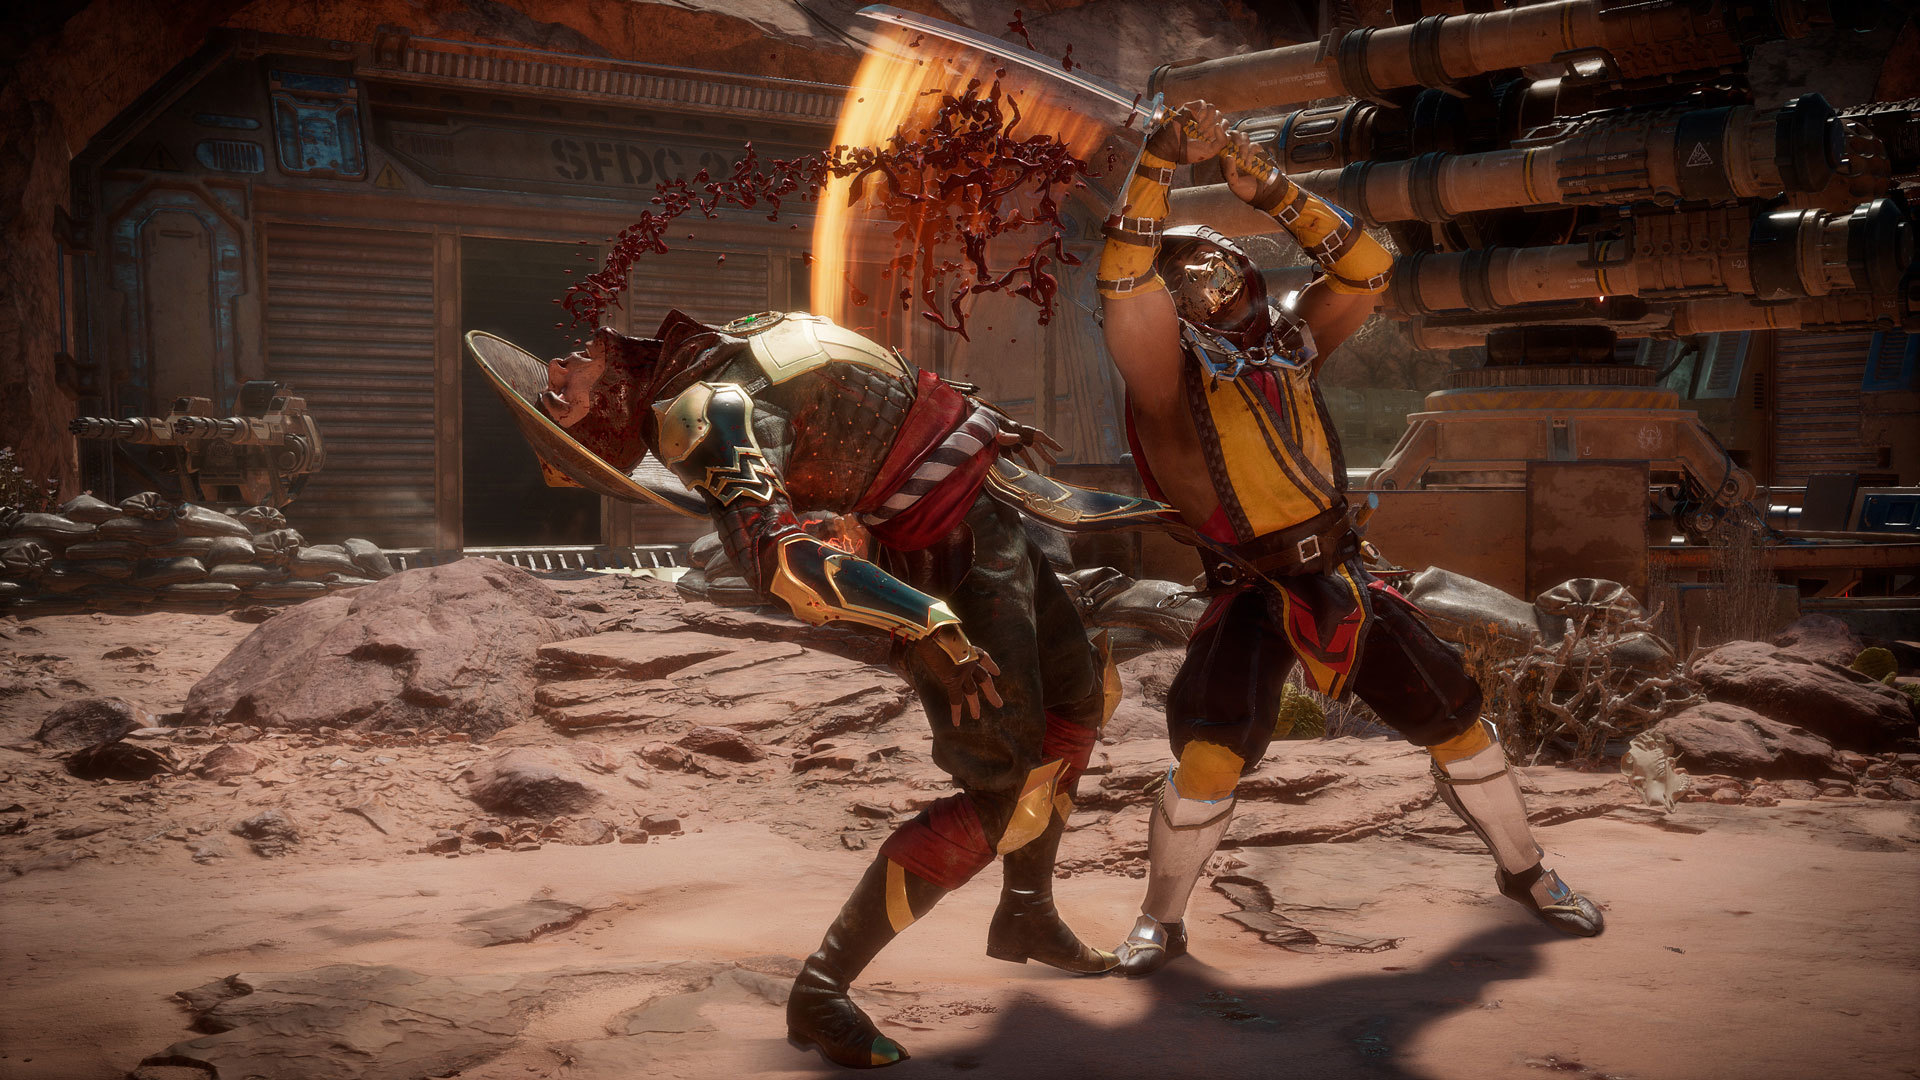 Some People Arent Happy About Mortal Kombat 11s Censored